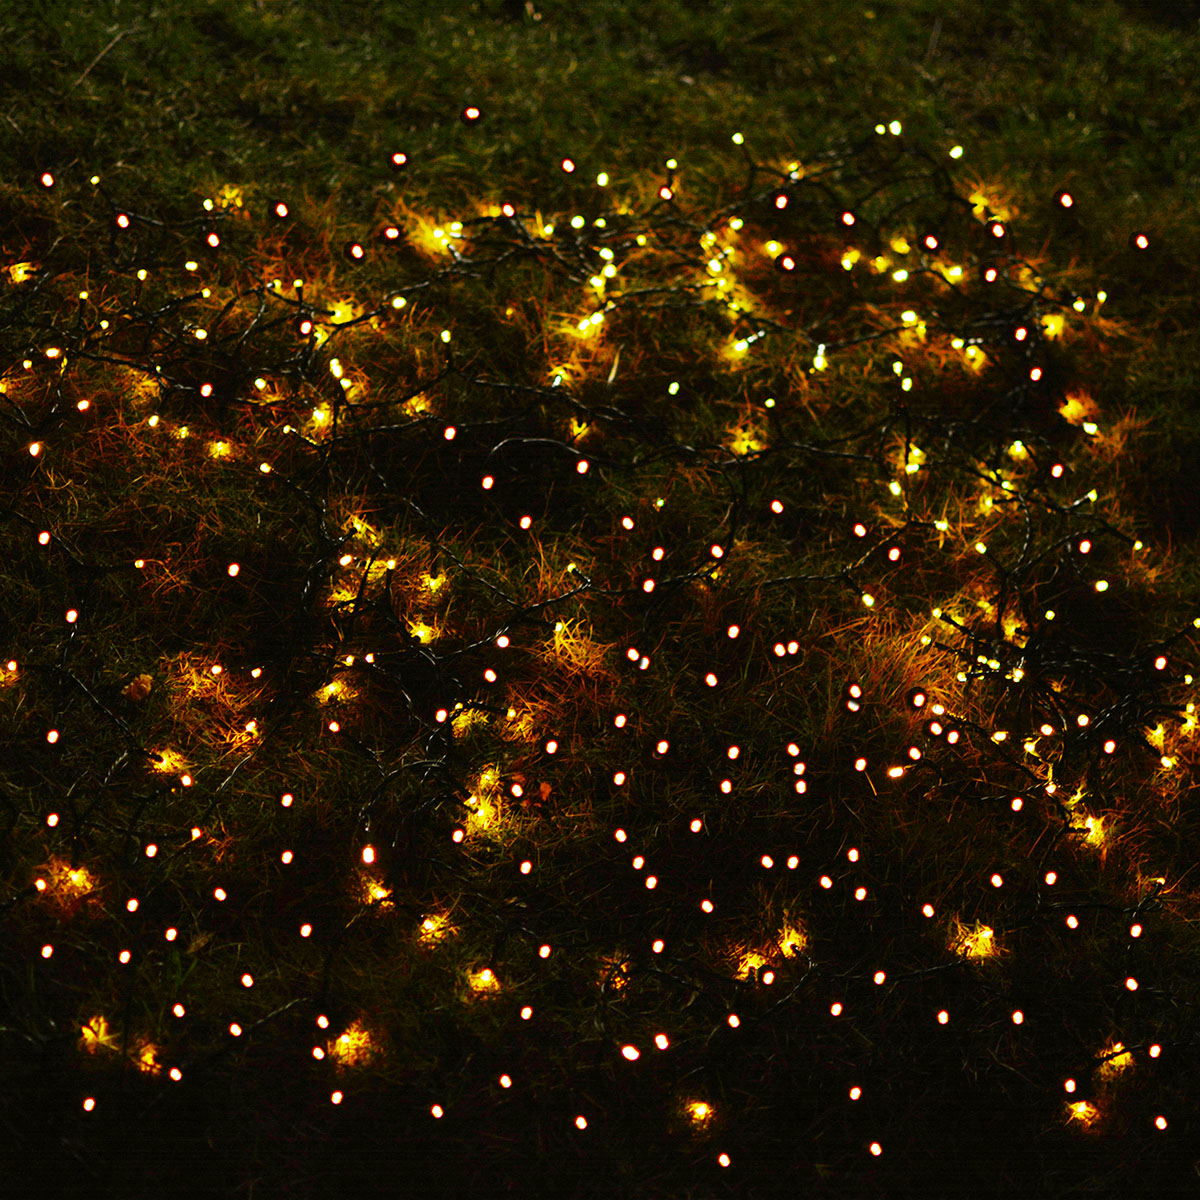 (2-Packs)Solar Outdoor Lights 72ft 200 LED Halloween Fairy String Lights for Gardens,Homes,Wedding,Party,Waterproof(Warm White) - image 12 of 15